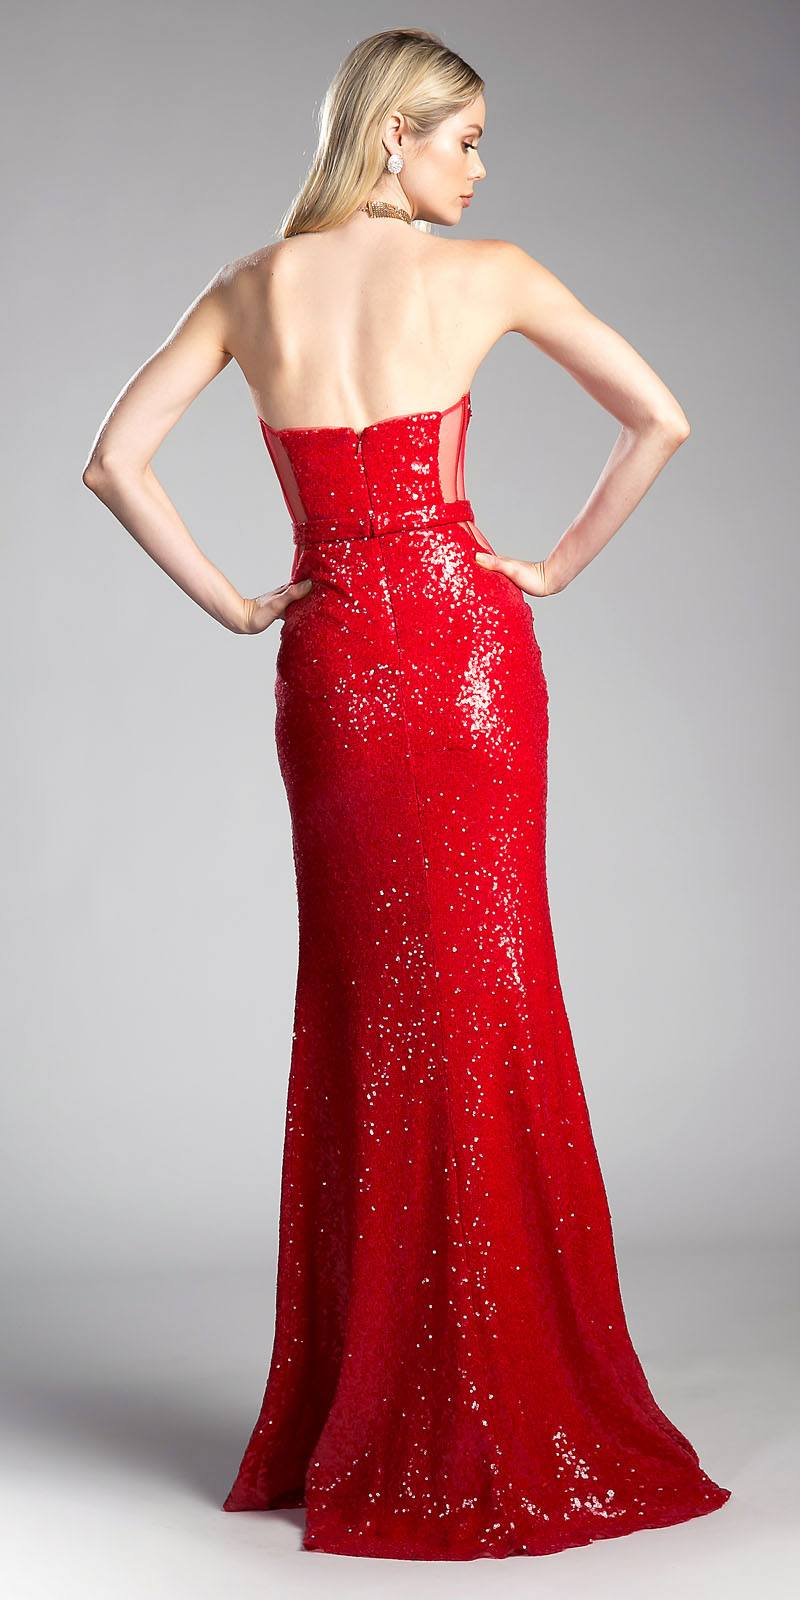 6b57d102d79a9 ... Sequins Red Strapless Evening Gown Sweetheart Neckline with Slit ...